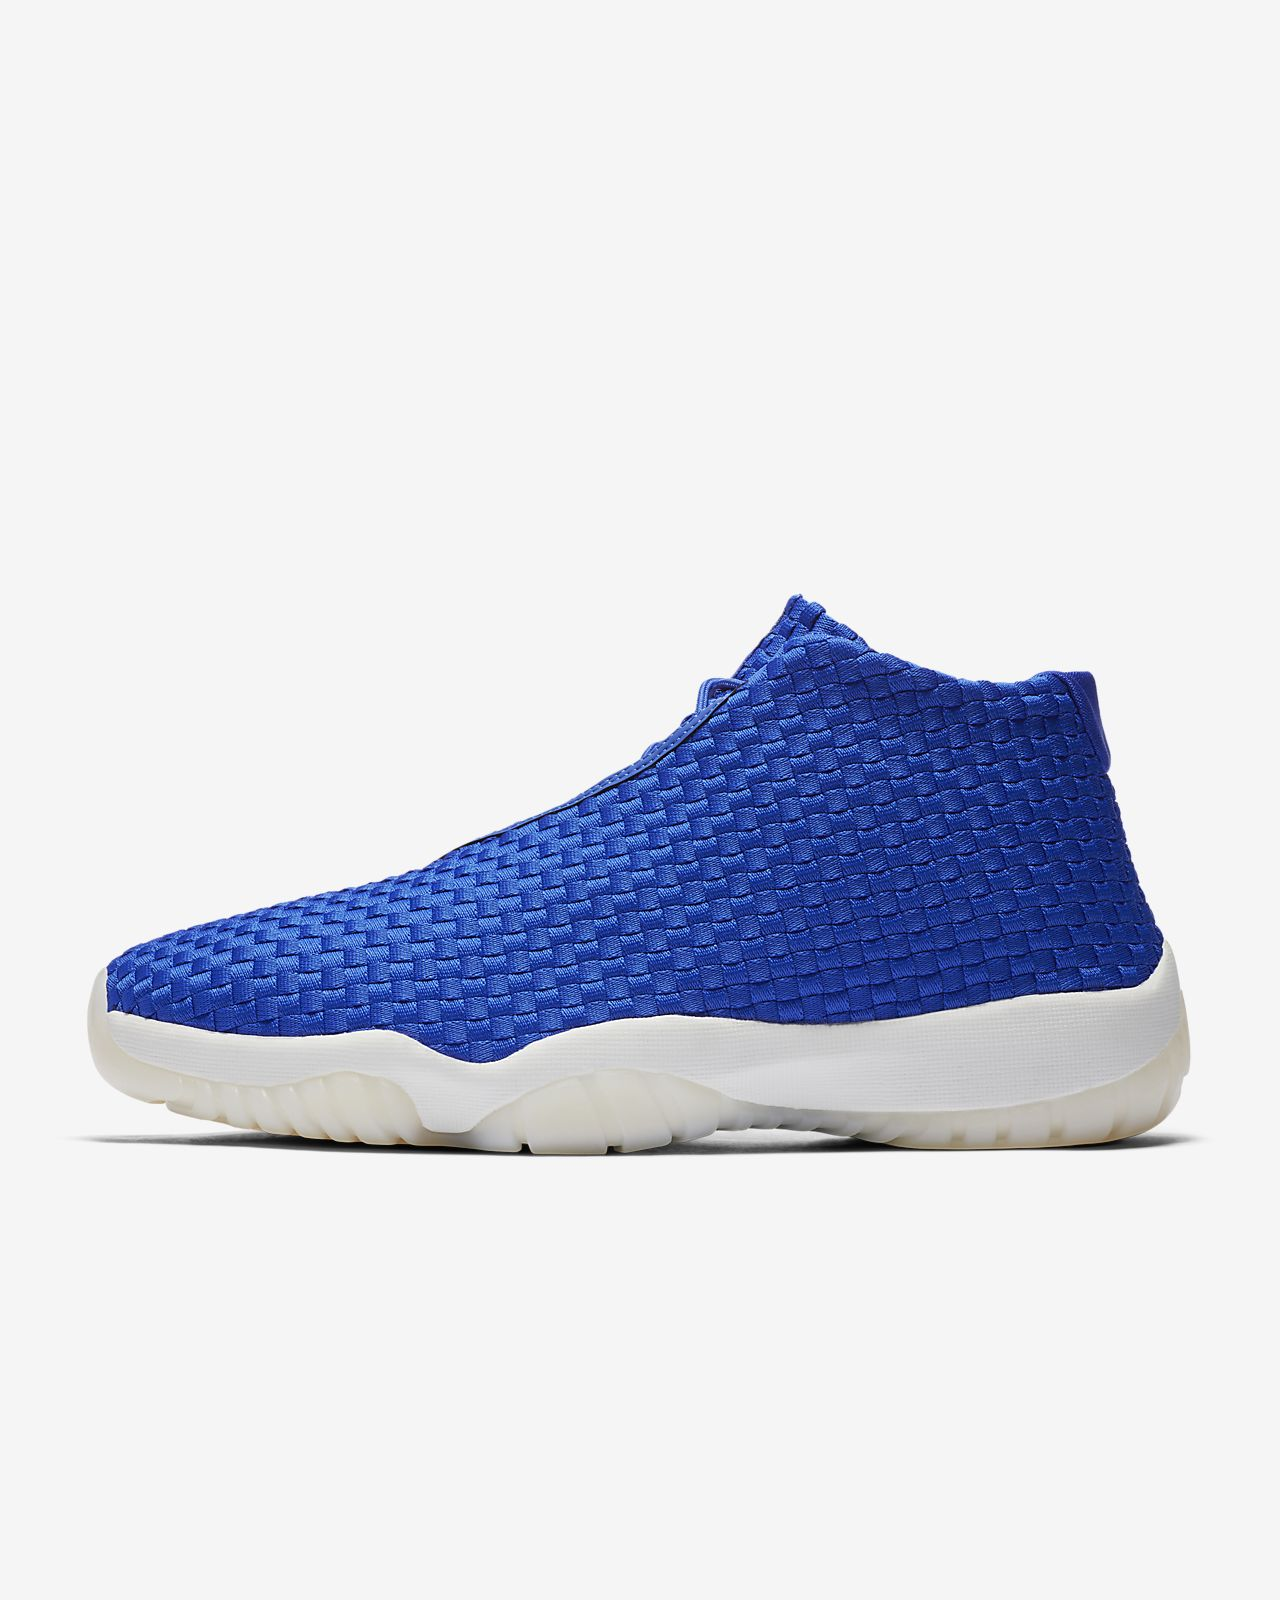 98463aabdc0 Air Jordan Future Men s Shoe. Nike.com